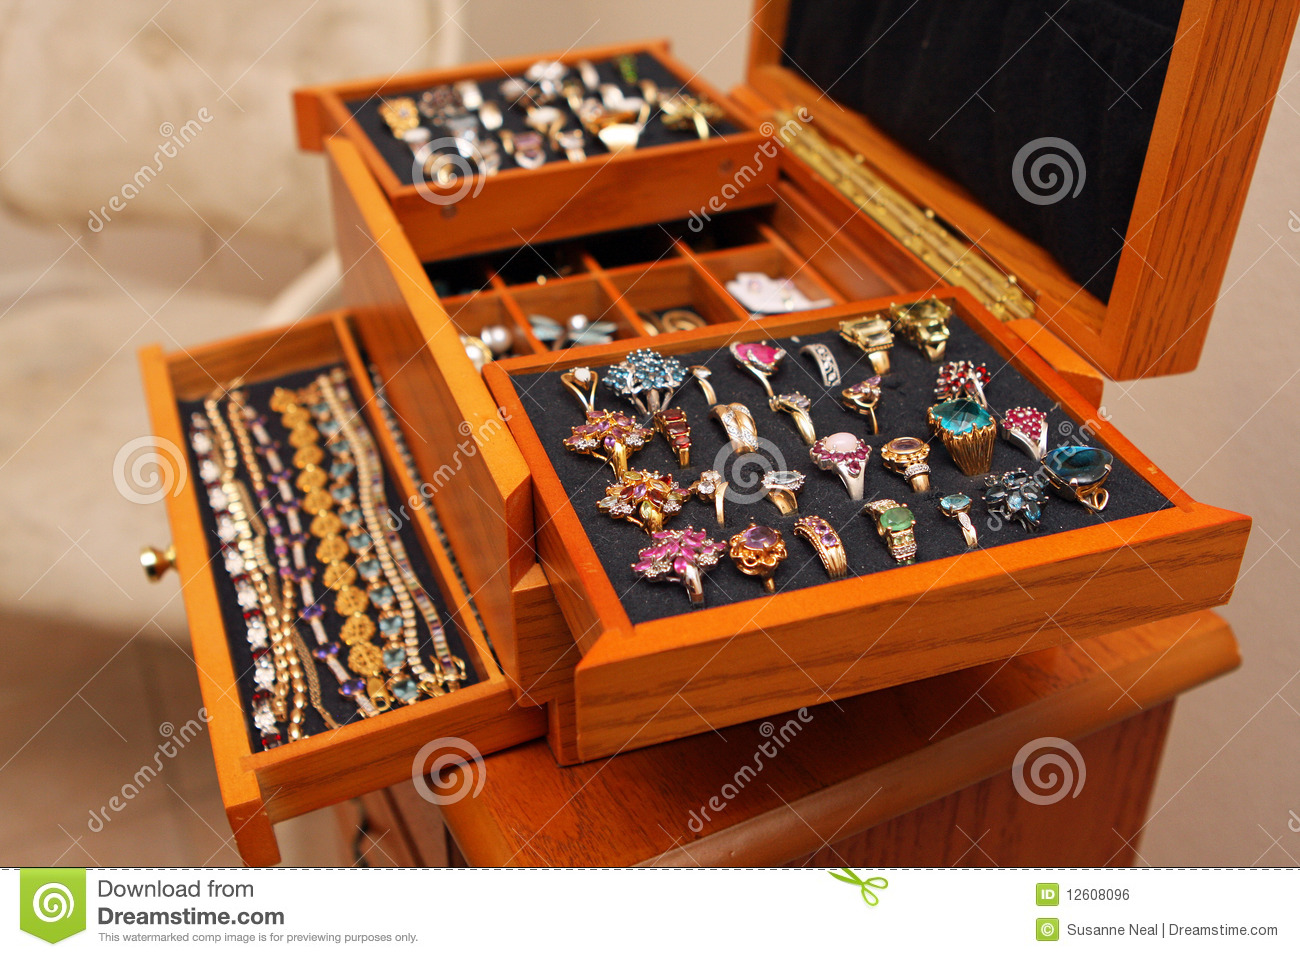 Jewelry Box With Rings And Bracelets Royalty Free Stock